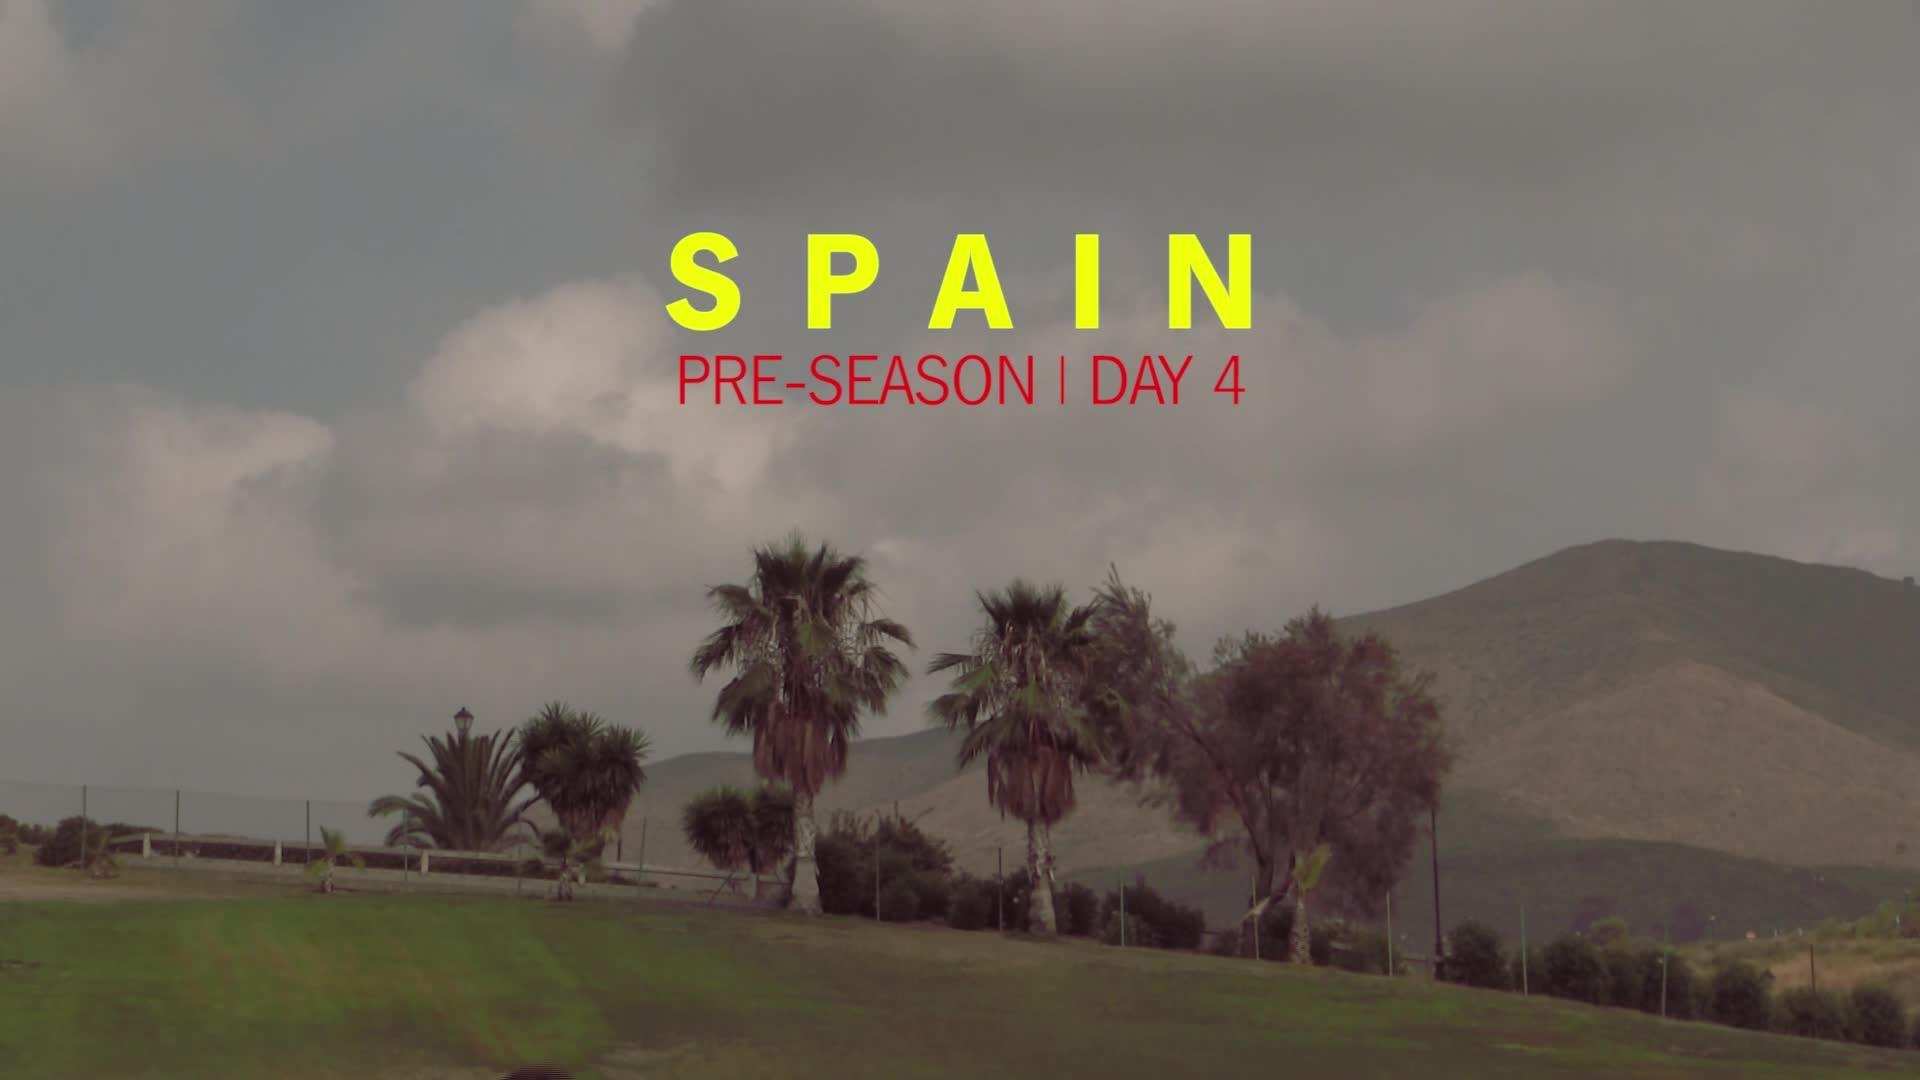 PRE-SEASON DIARY | Day 4 in Spain